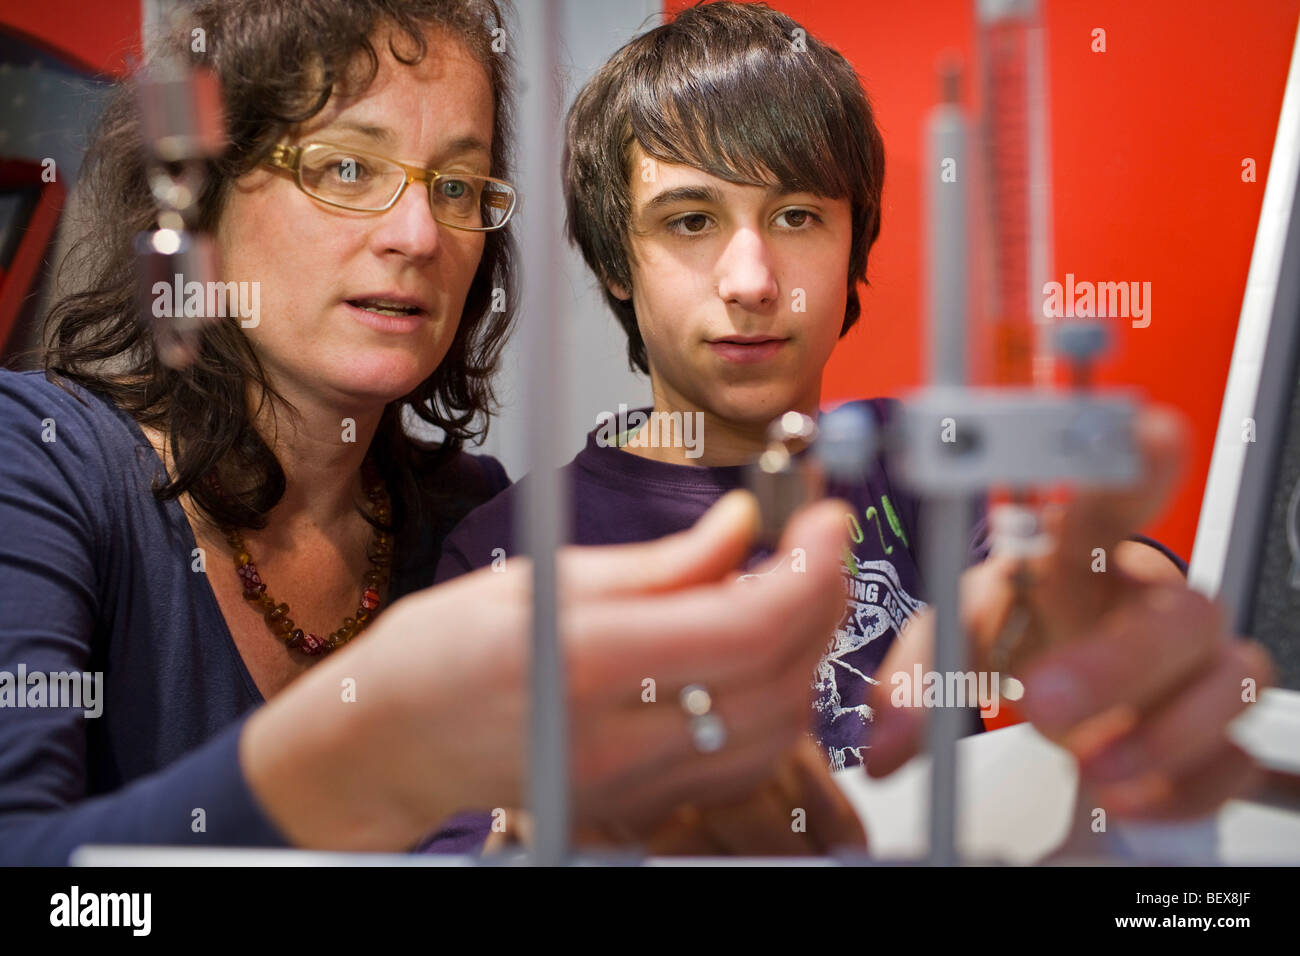 Student and teacher at physics class . - Stock Image